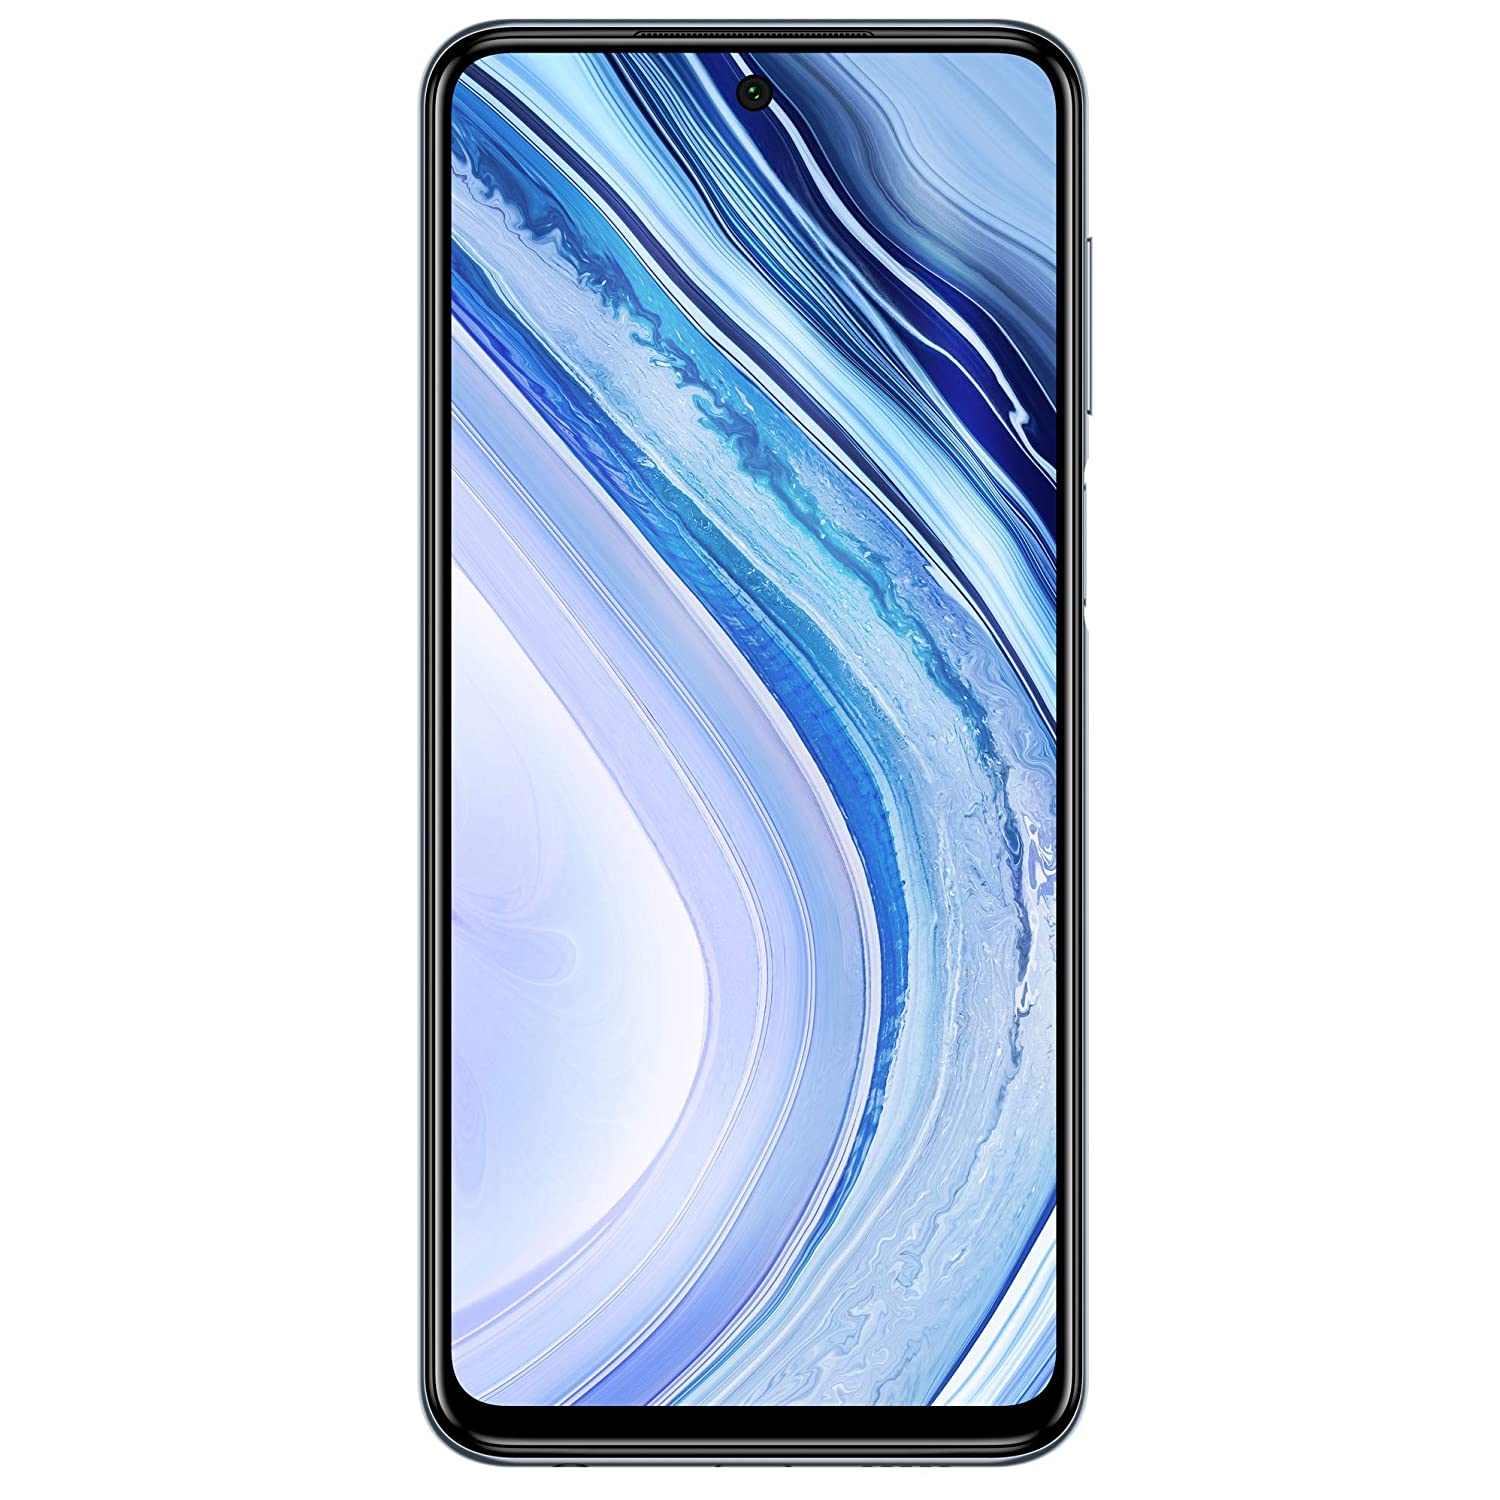 Redmi Note 9 Pro Max (Interstellar Black, 6GB RAM, 64GB Storage) - 64MP Quad Camera & Alexa Hands-Free | Extra INR 1000 Off with Coupons | Upto 12 Months No Cost EMI